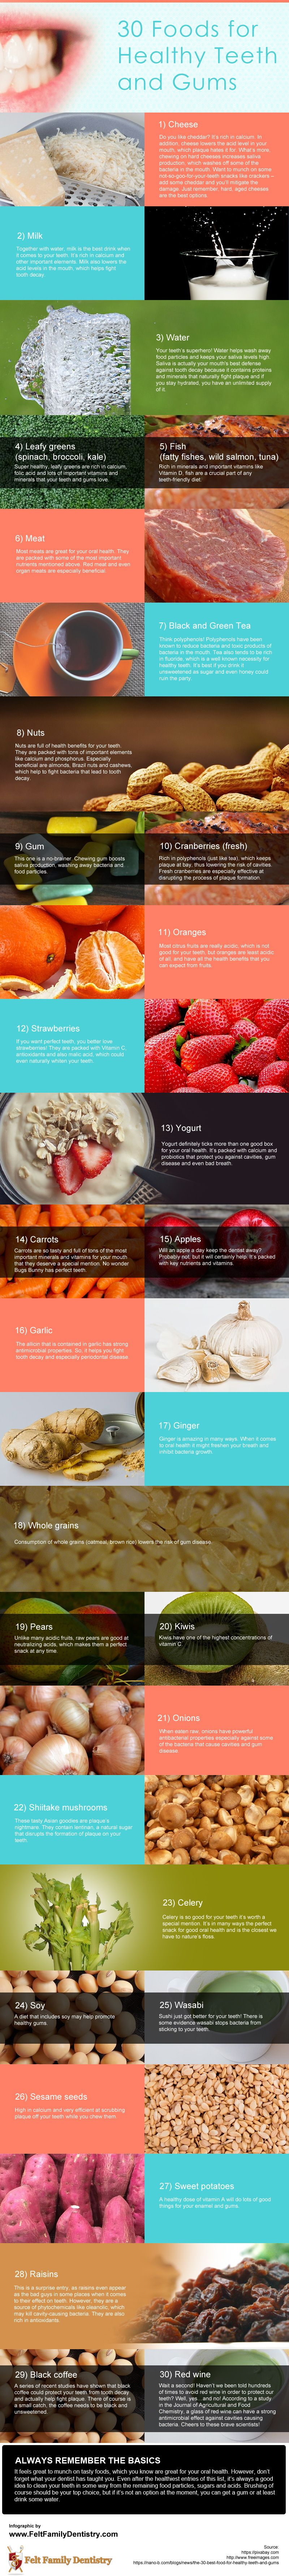 30 Foods for Healthy Teeth and Gums #Infographic